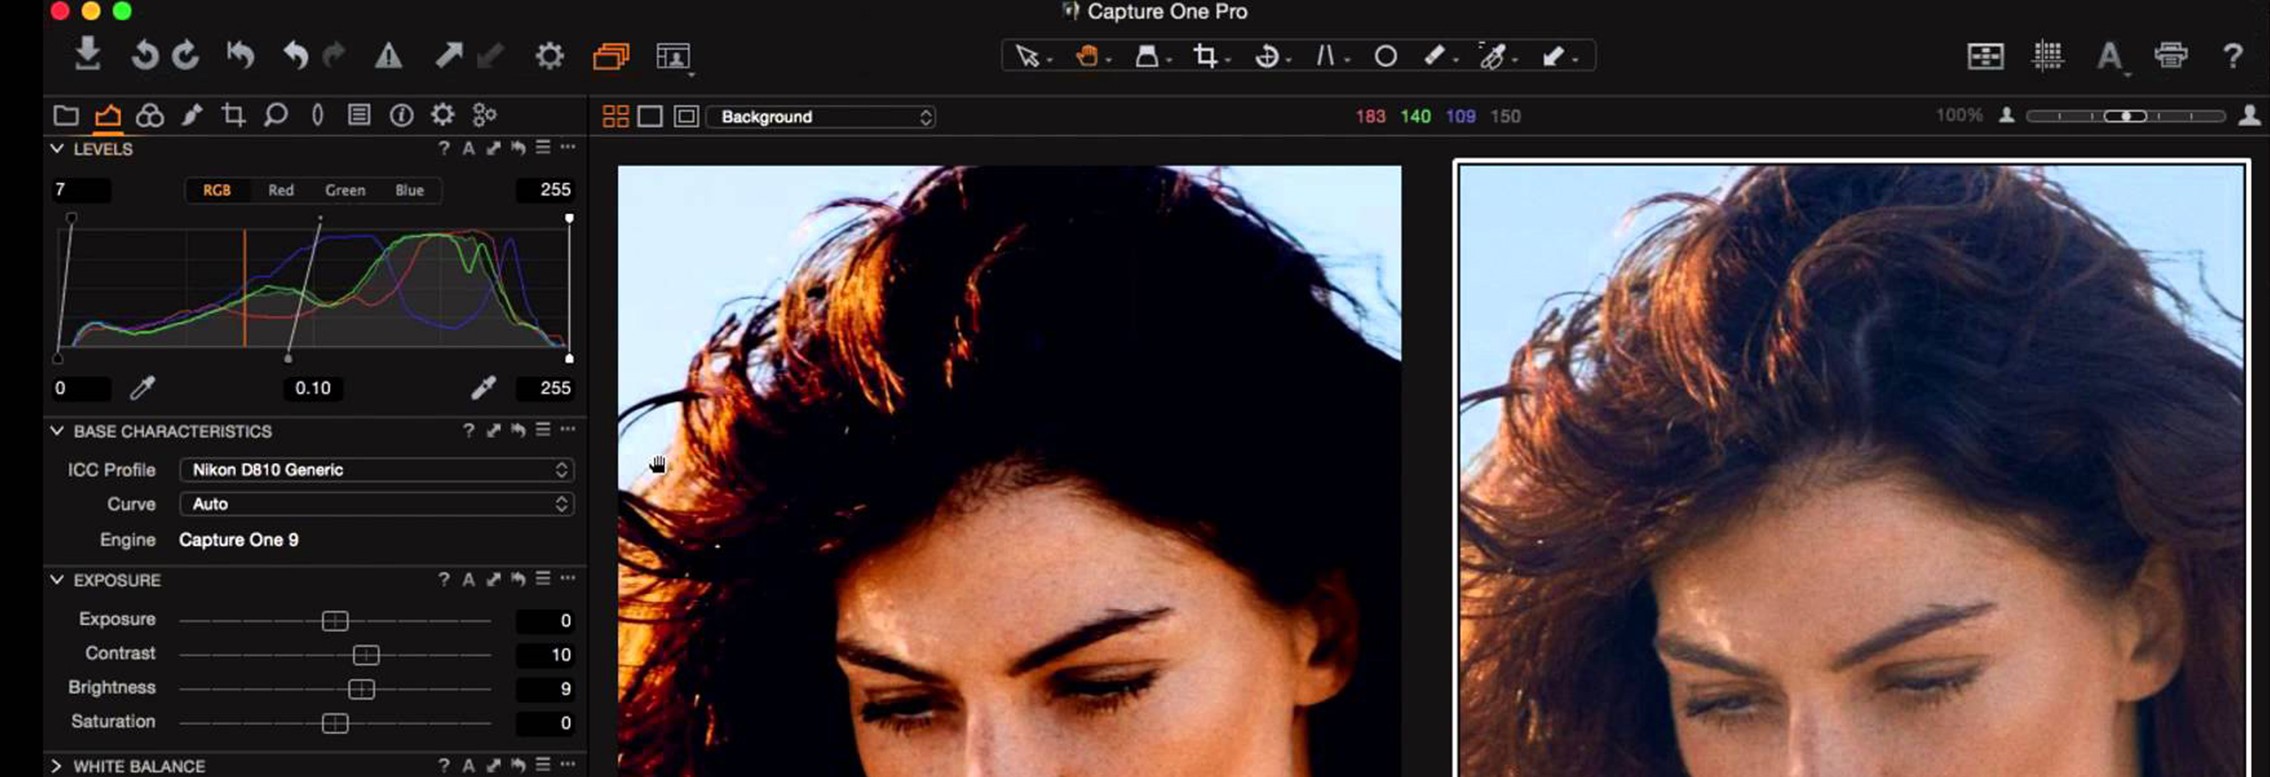 Curs Capture One Pro 8